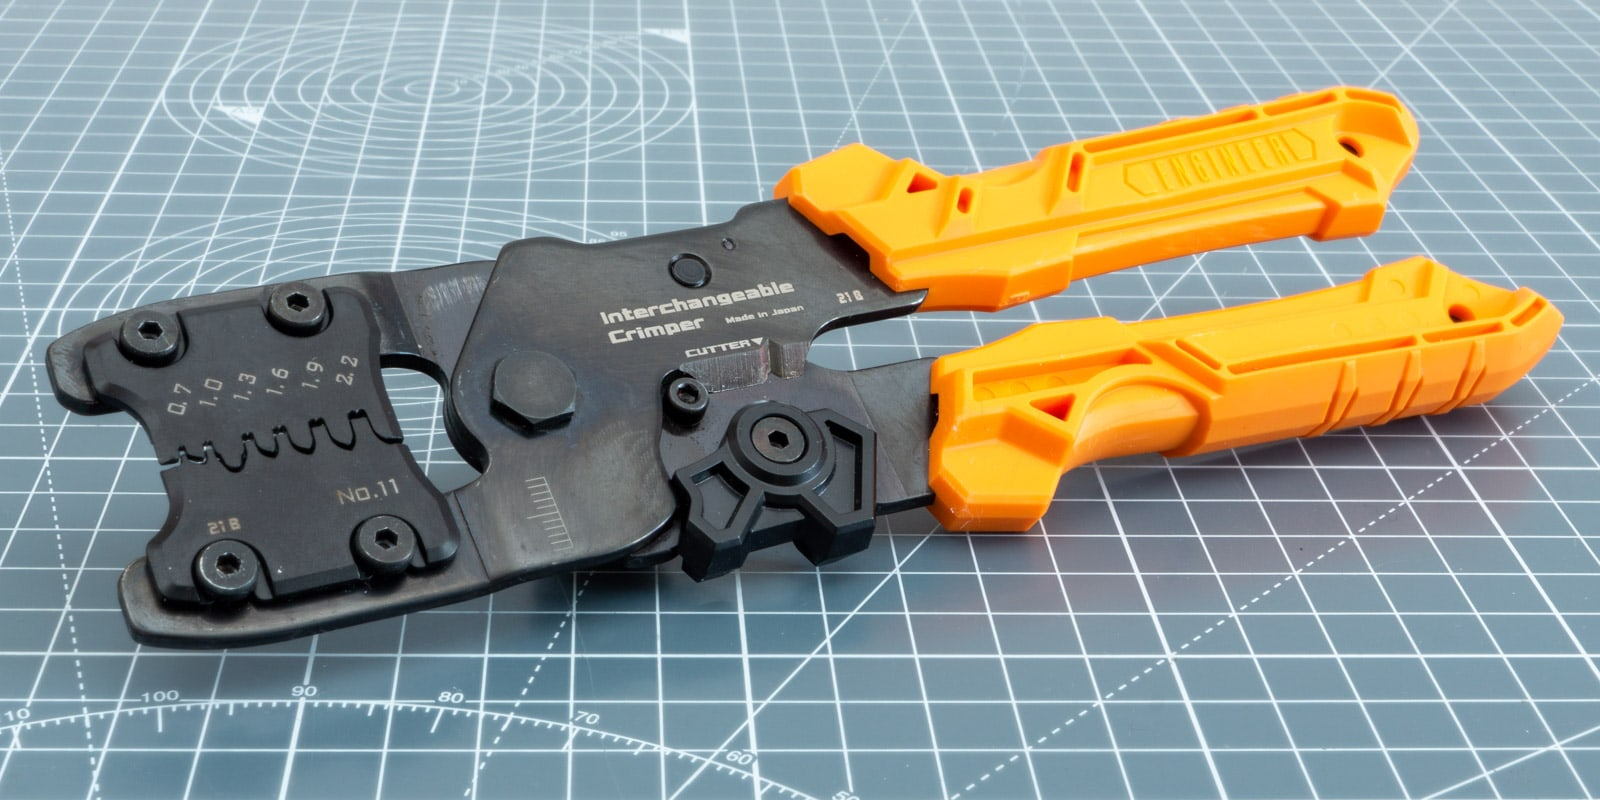 Engineer PAD-11 Precision Crimper Review